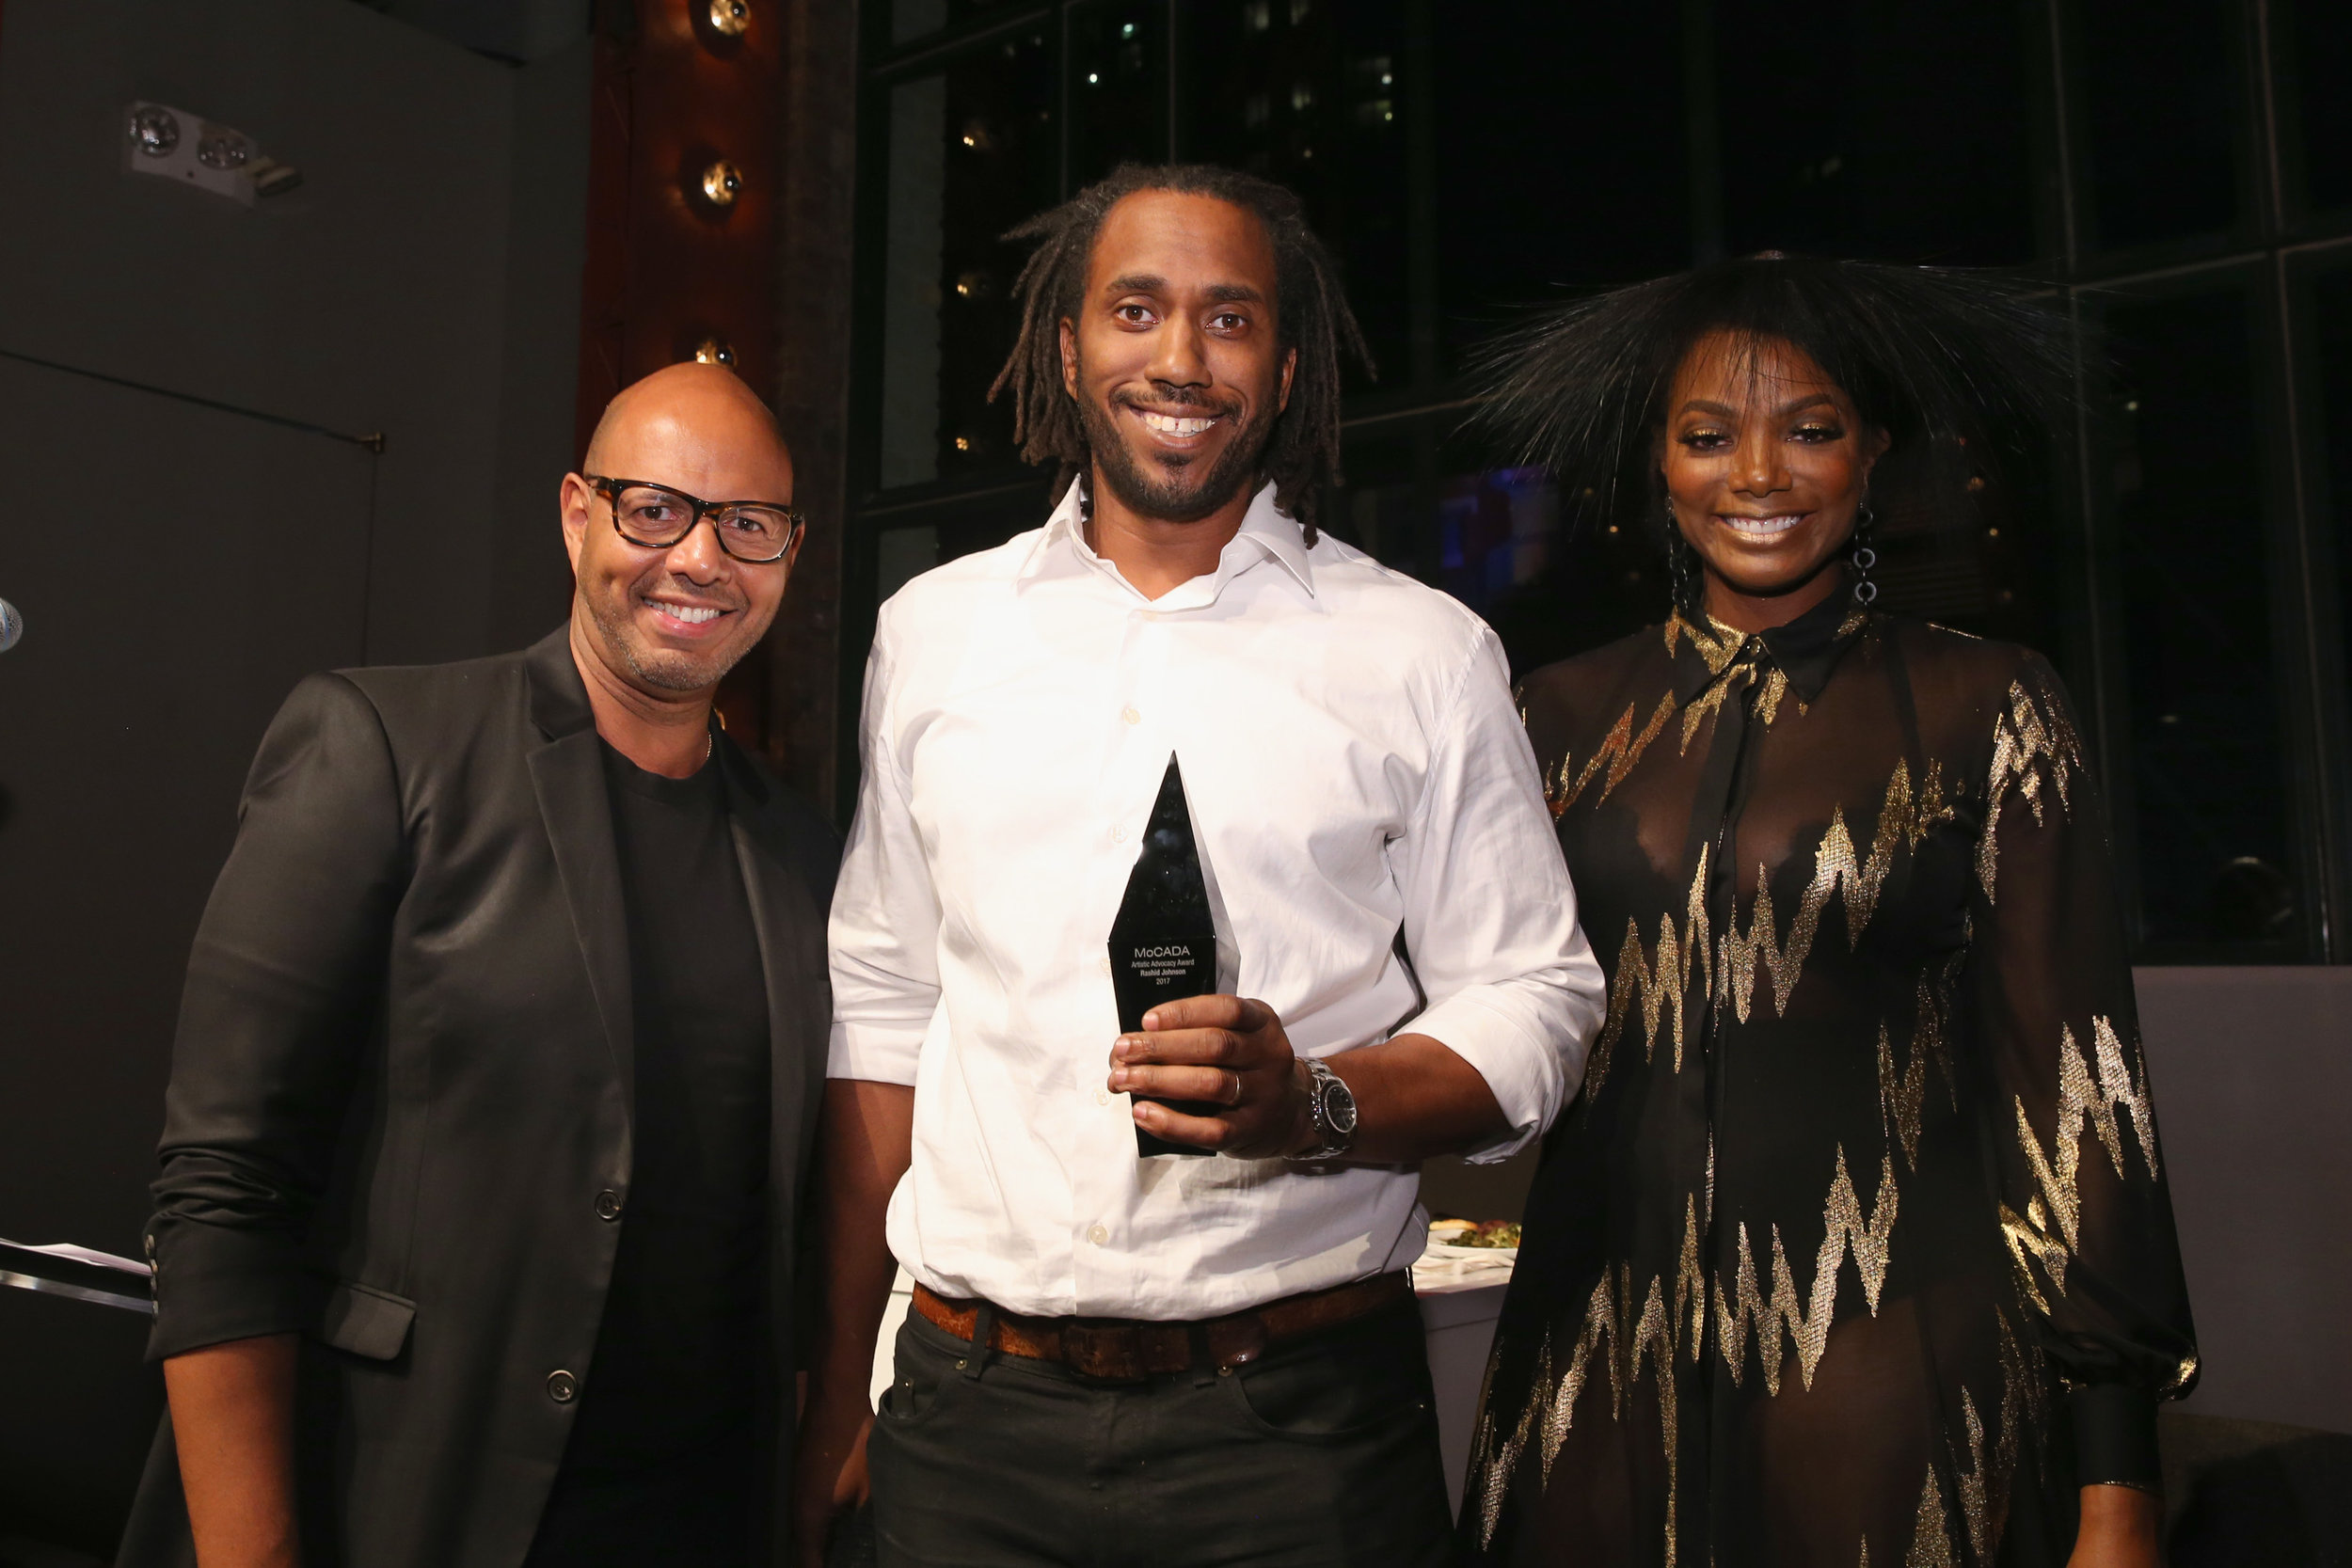 Emil Wilbekin, Rashid Johnson, Tai Beauchamp. Photo by Getty Images.